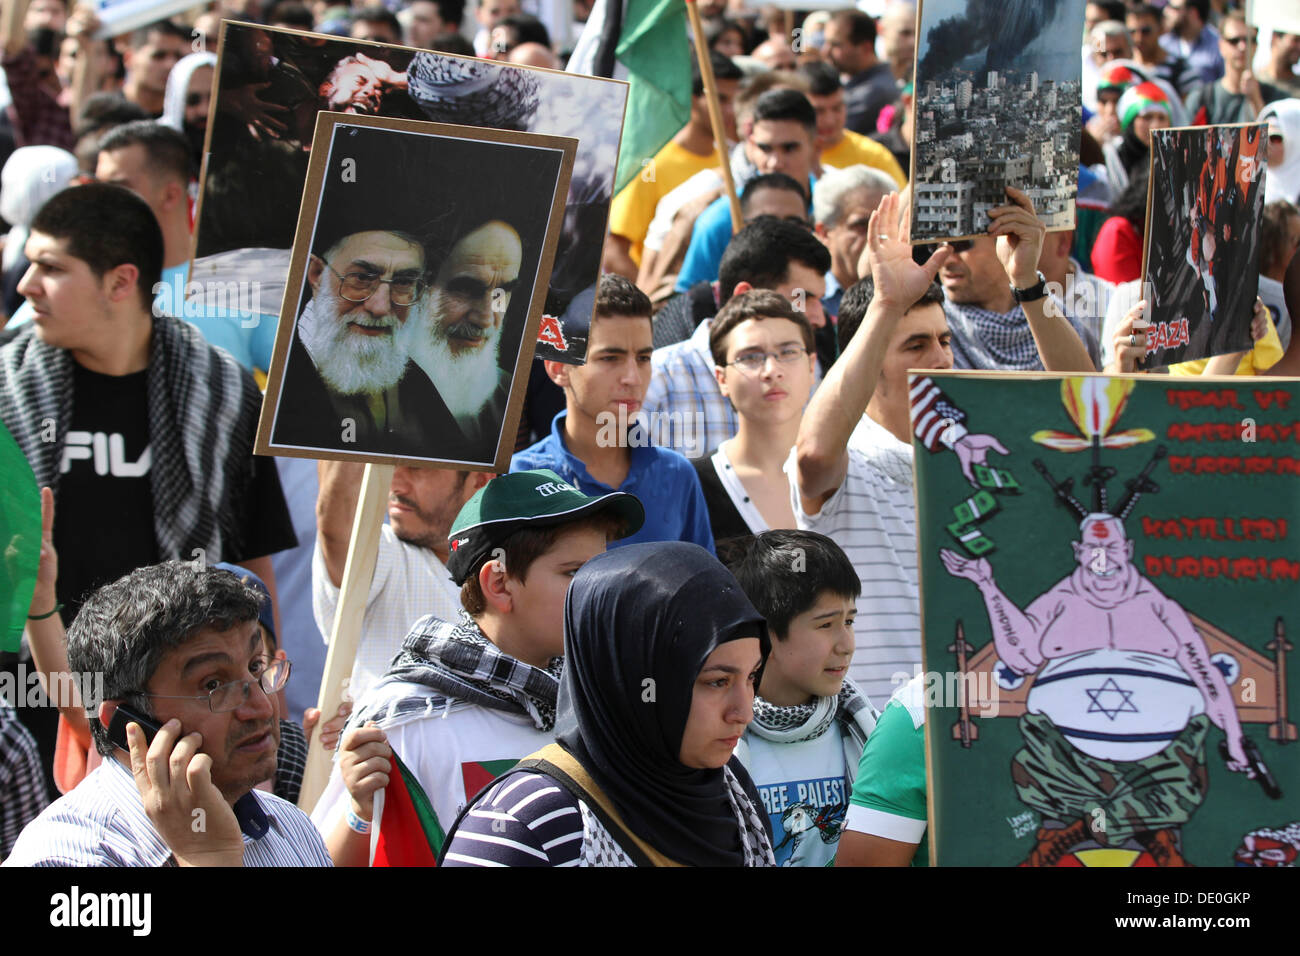 Anti-Israel Al-Quds Day demonstration with hundreds of participants protesting through Charlottenburg, Berlin - Stock Image